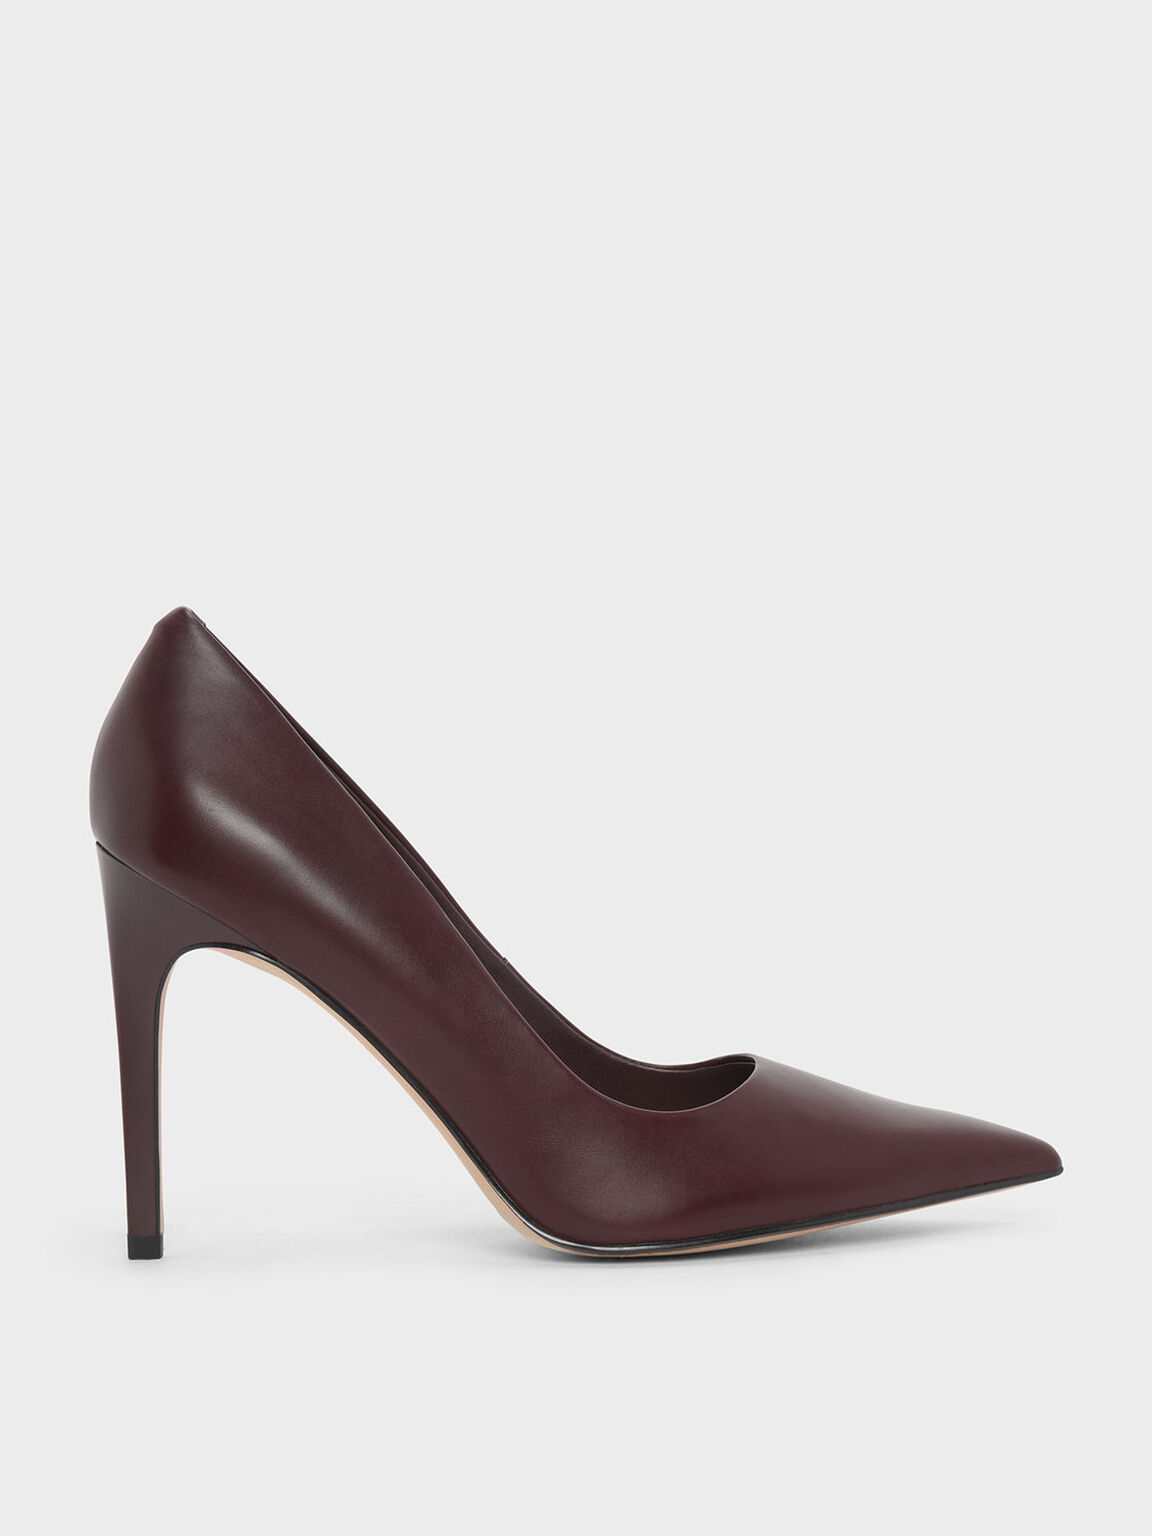 Classic Pointed Pumps, Burgundy, hi-res